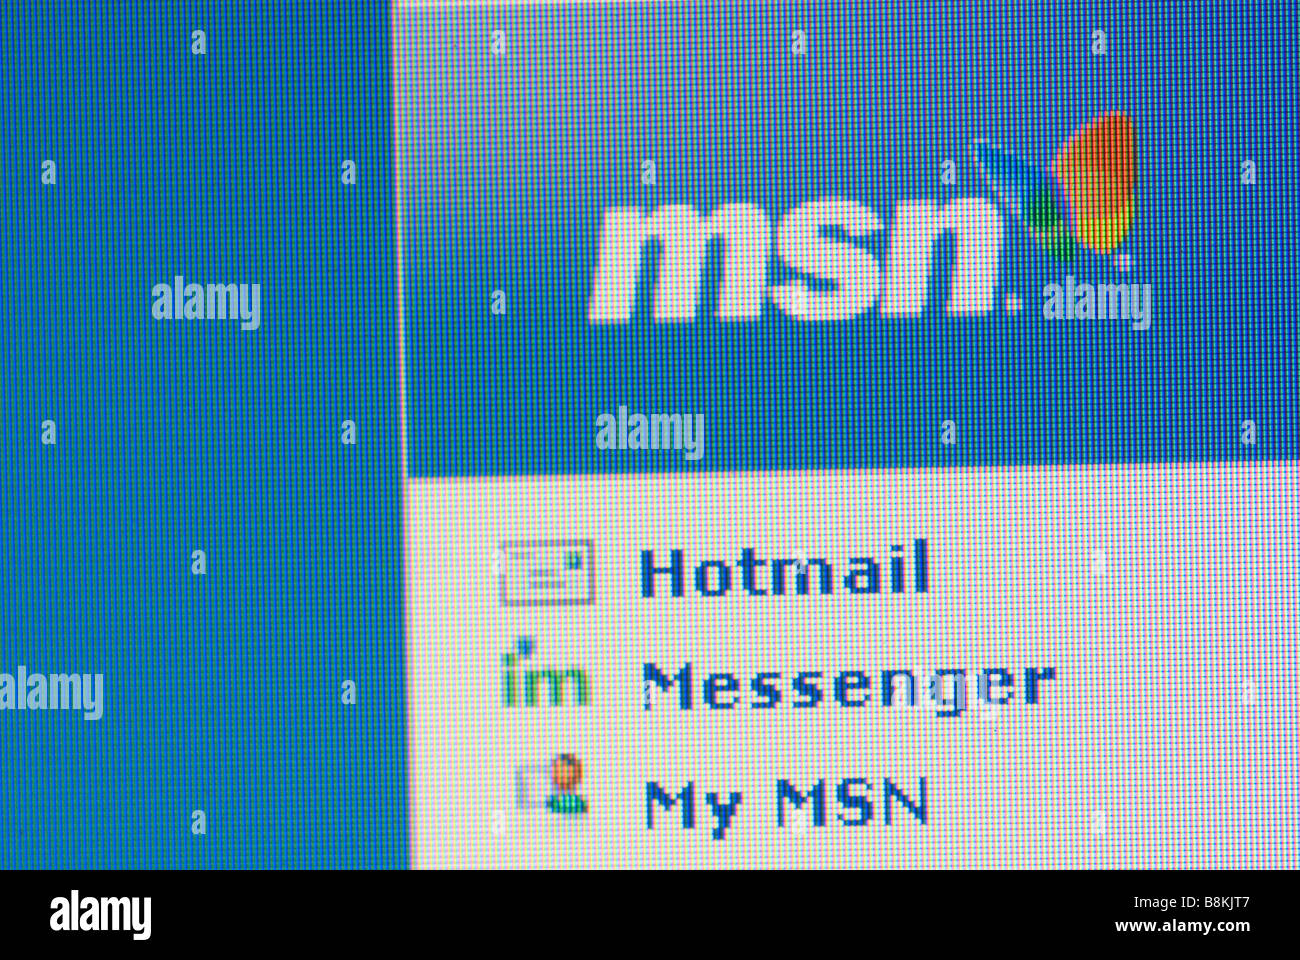 Close up of MSN web page on a computer screen - Stock Image